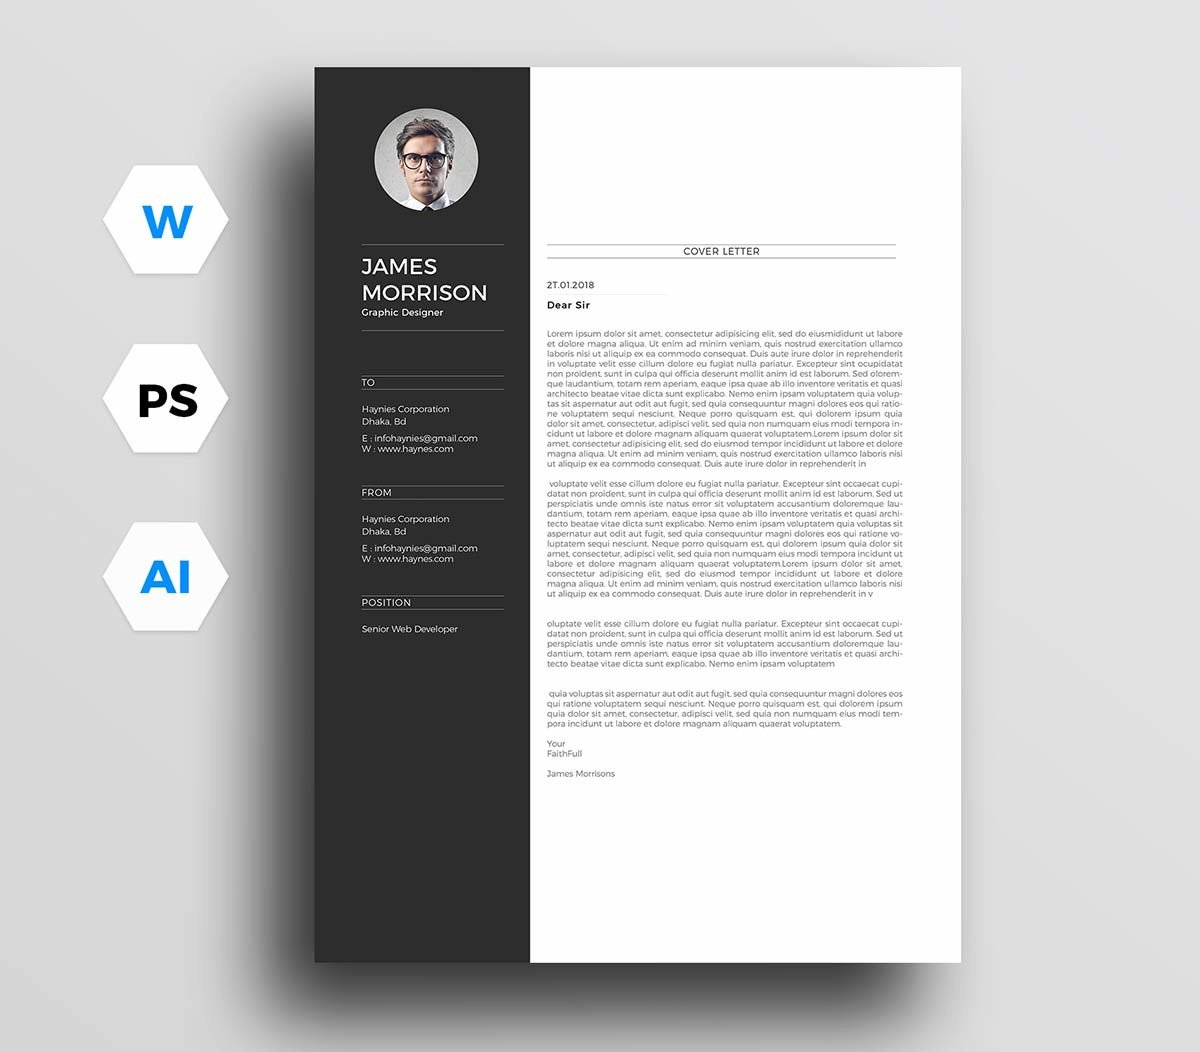 Free Cover Letter Template Word Doc from cdn-images.zety.com